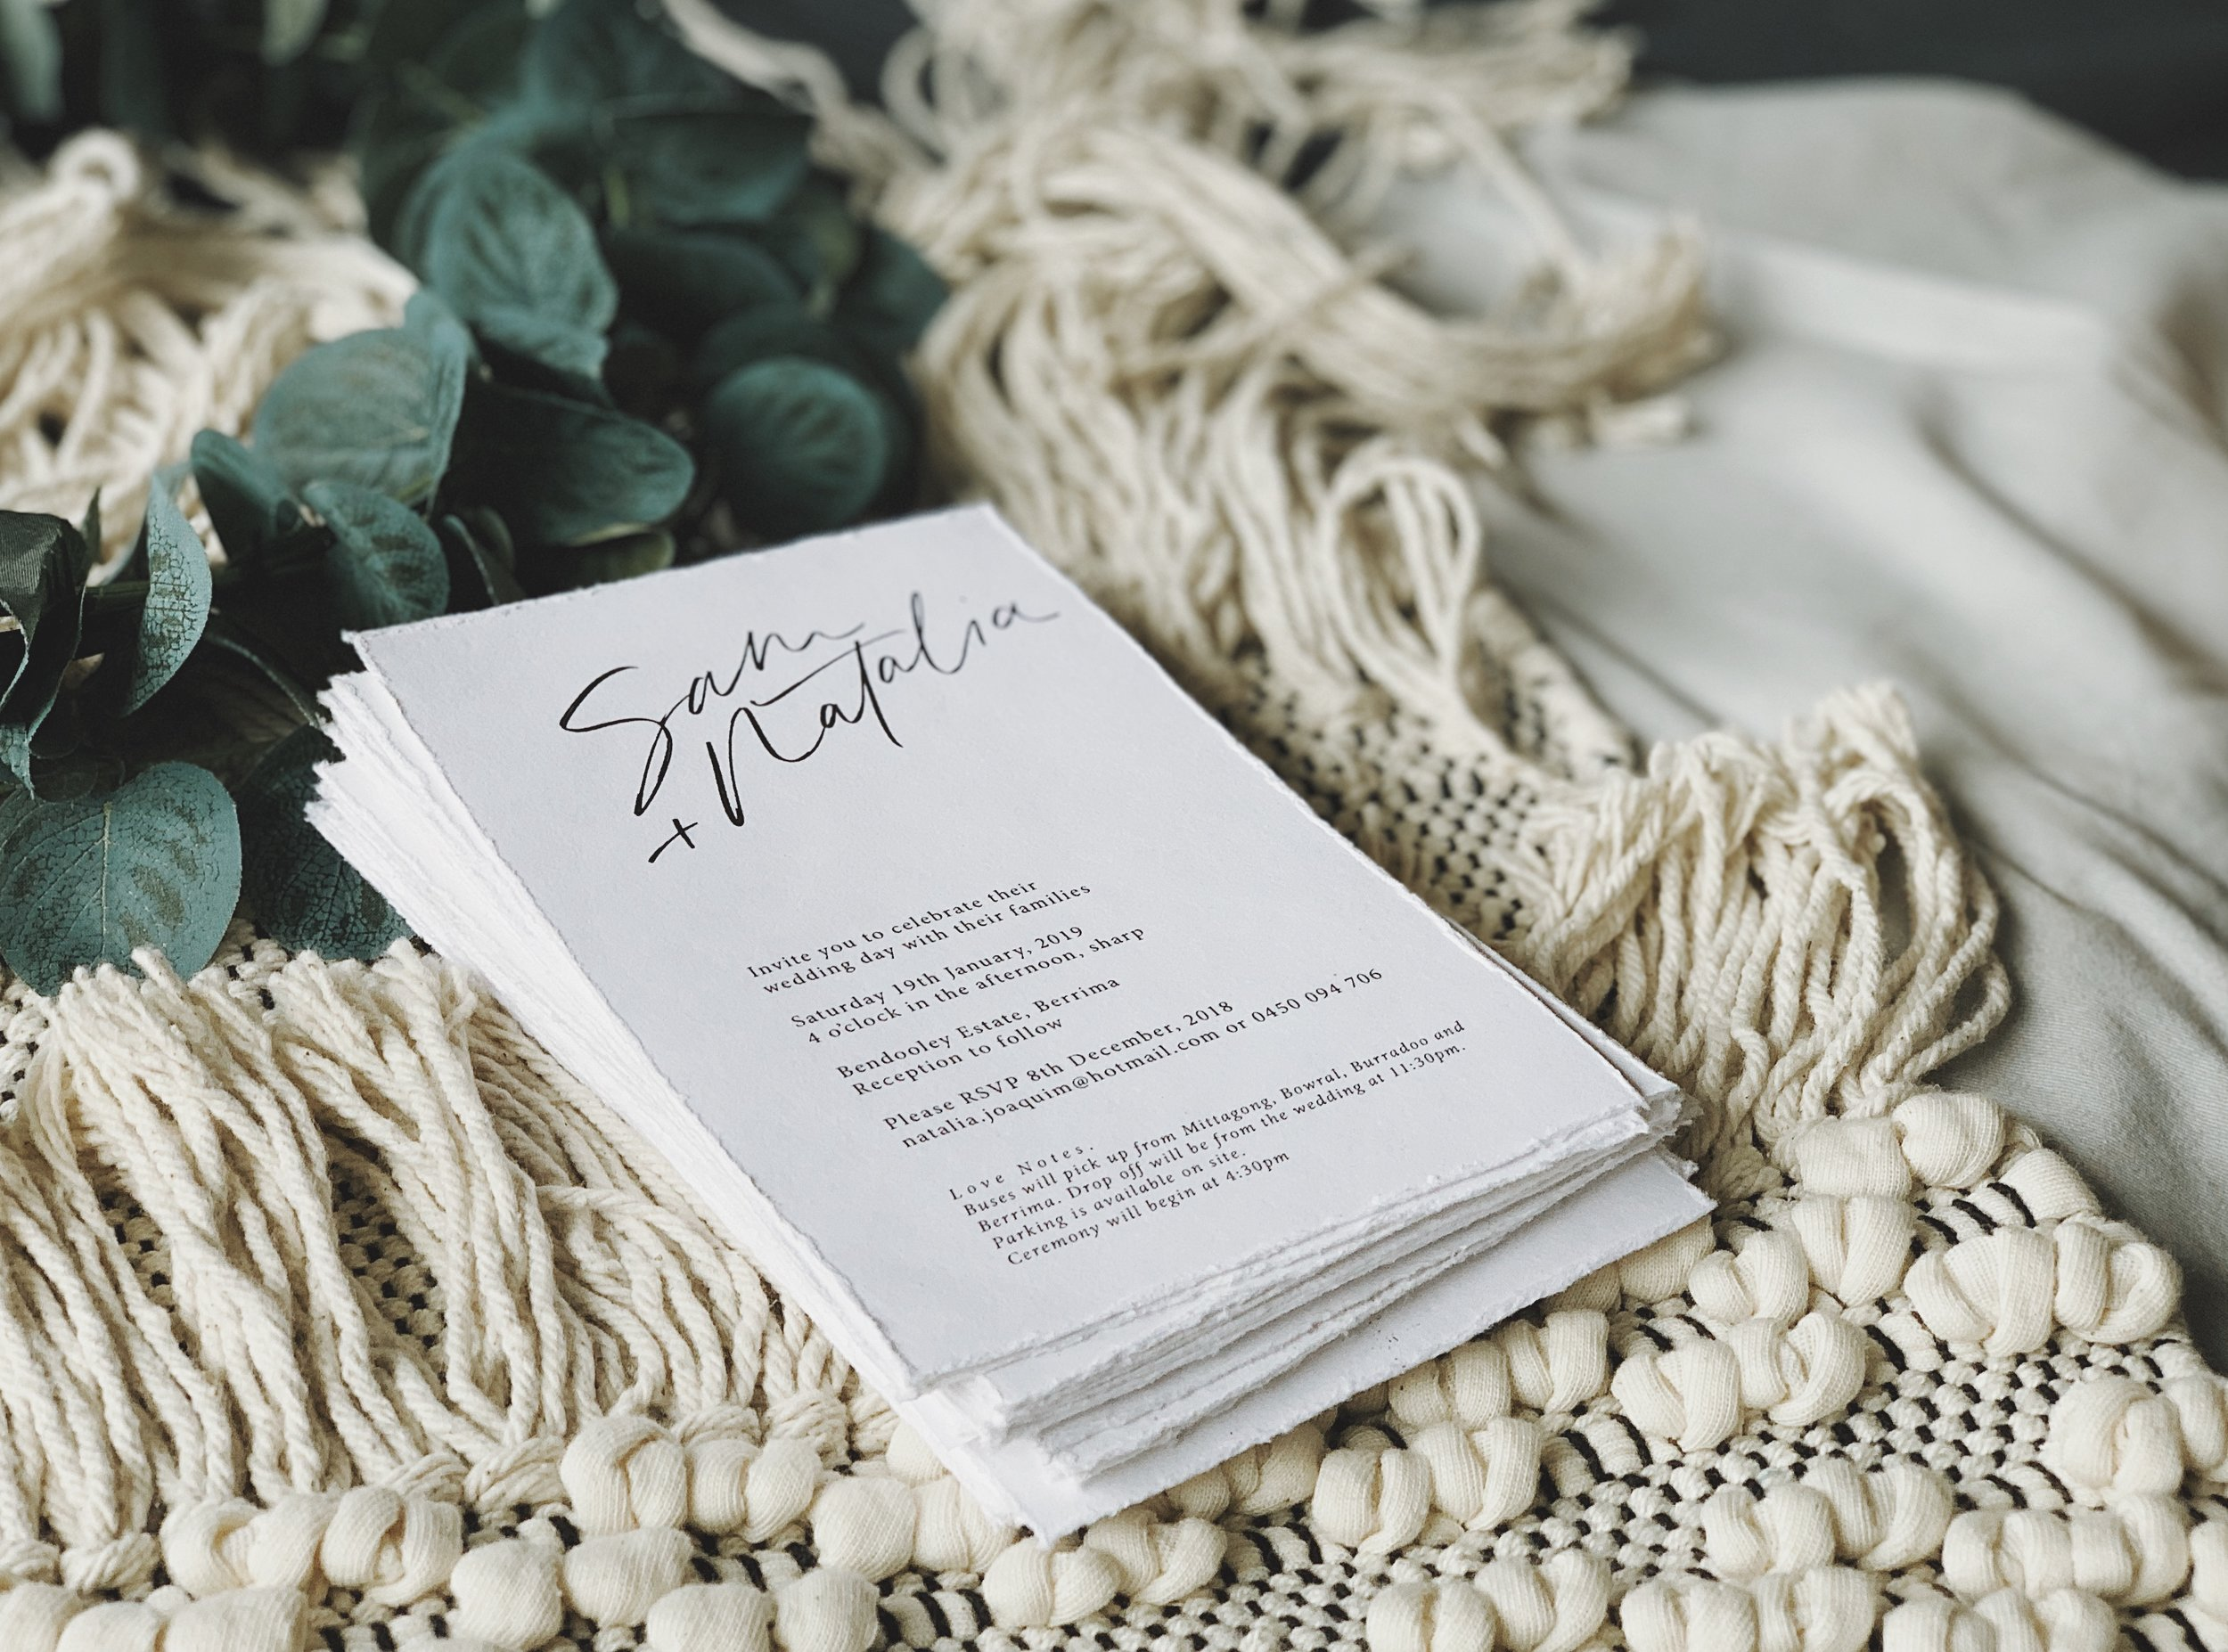 WEDDING & EVENT STATIONERY. - From invitation suites and event signs to place cards, menus and more, The Marker has you covered for all your special occasion stationery needs. Each item is created uniquely to each client and event. Enquire today for your bespoke stationery!